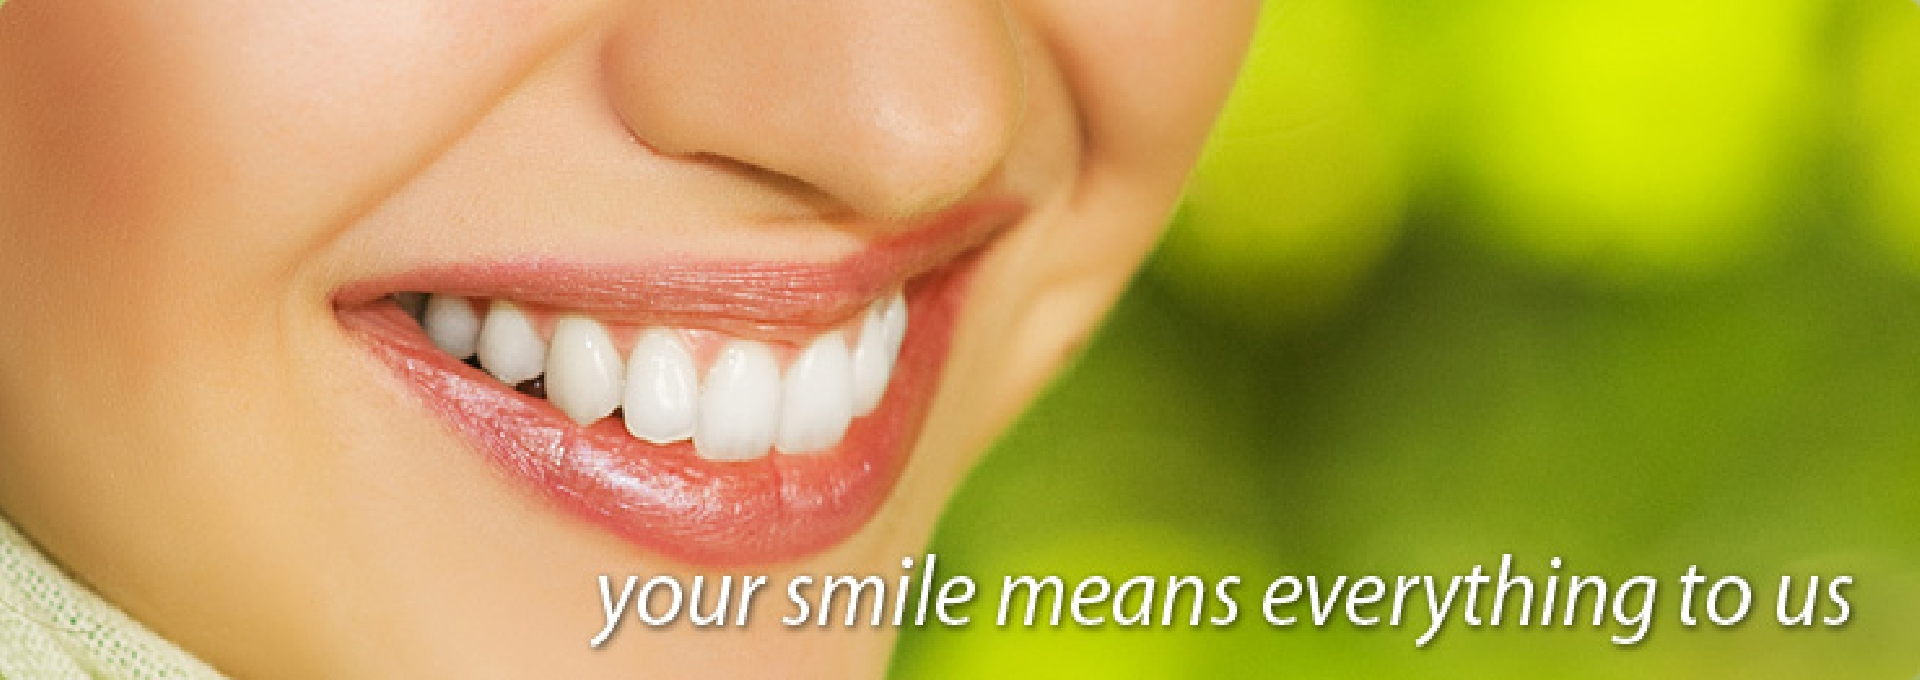 Smile and Shine Dental Clinic